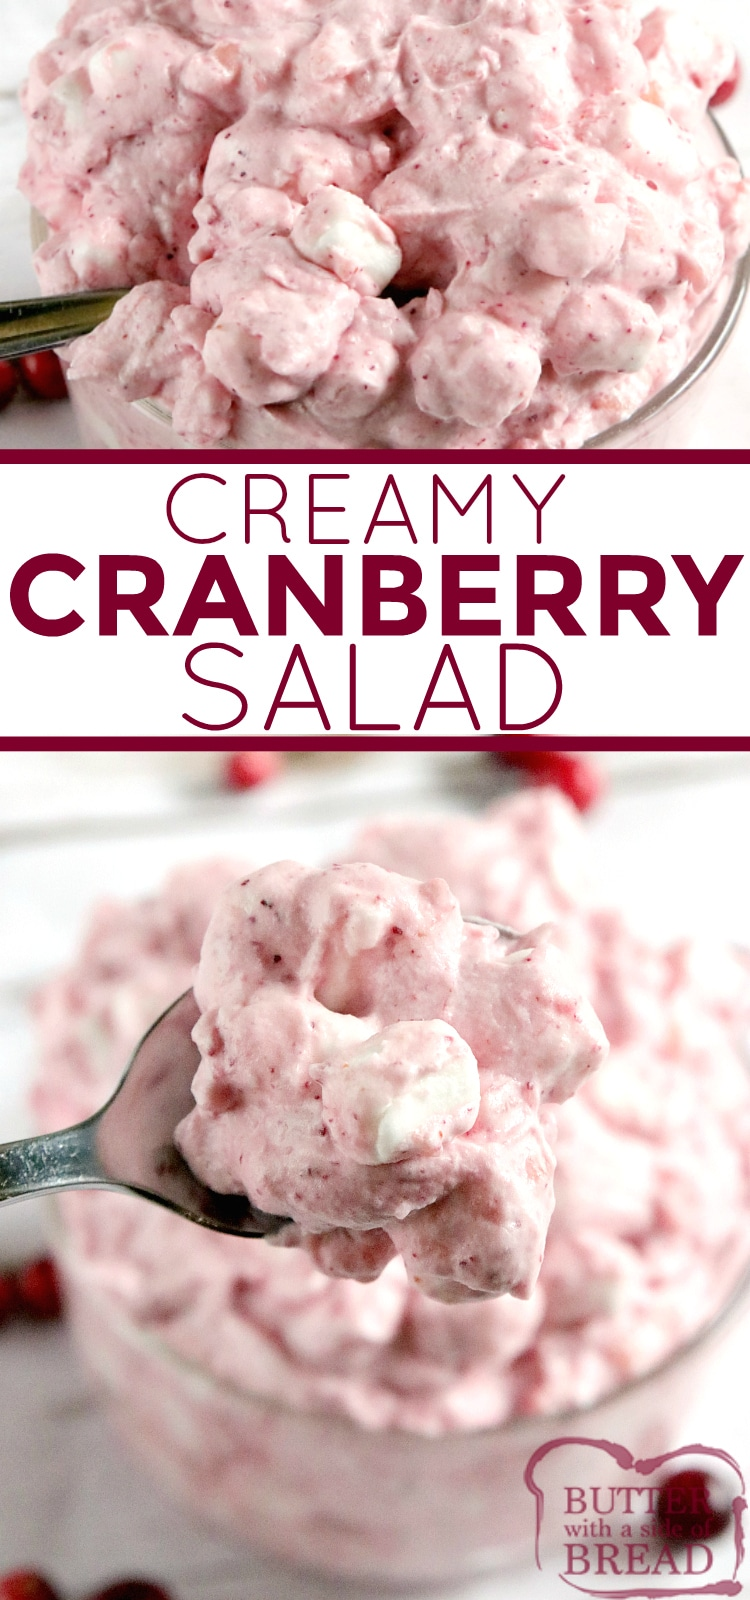 Creamy Cranberry Salad is made in minutes with only five ingredients! This cranberry salad recipe is made with fresh cranberries, crushed pineapple, whipping cream and marshmallows.